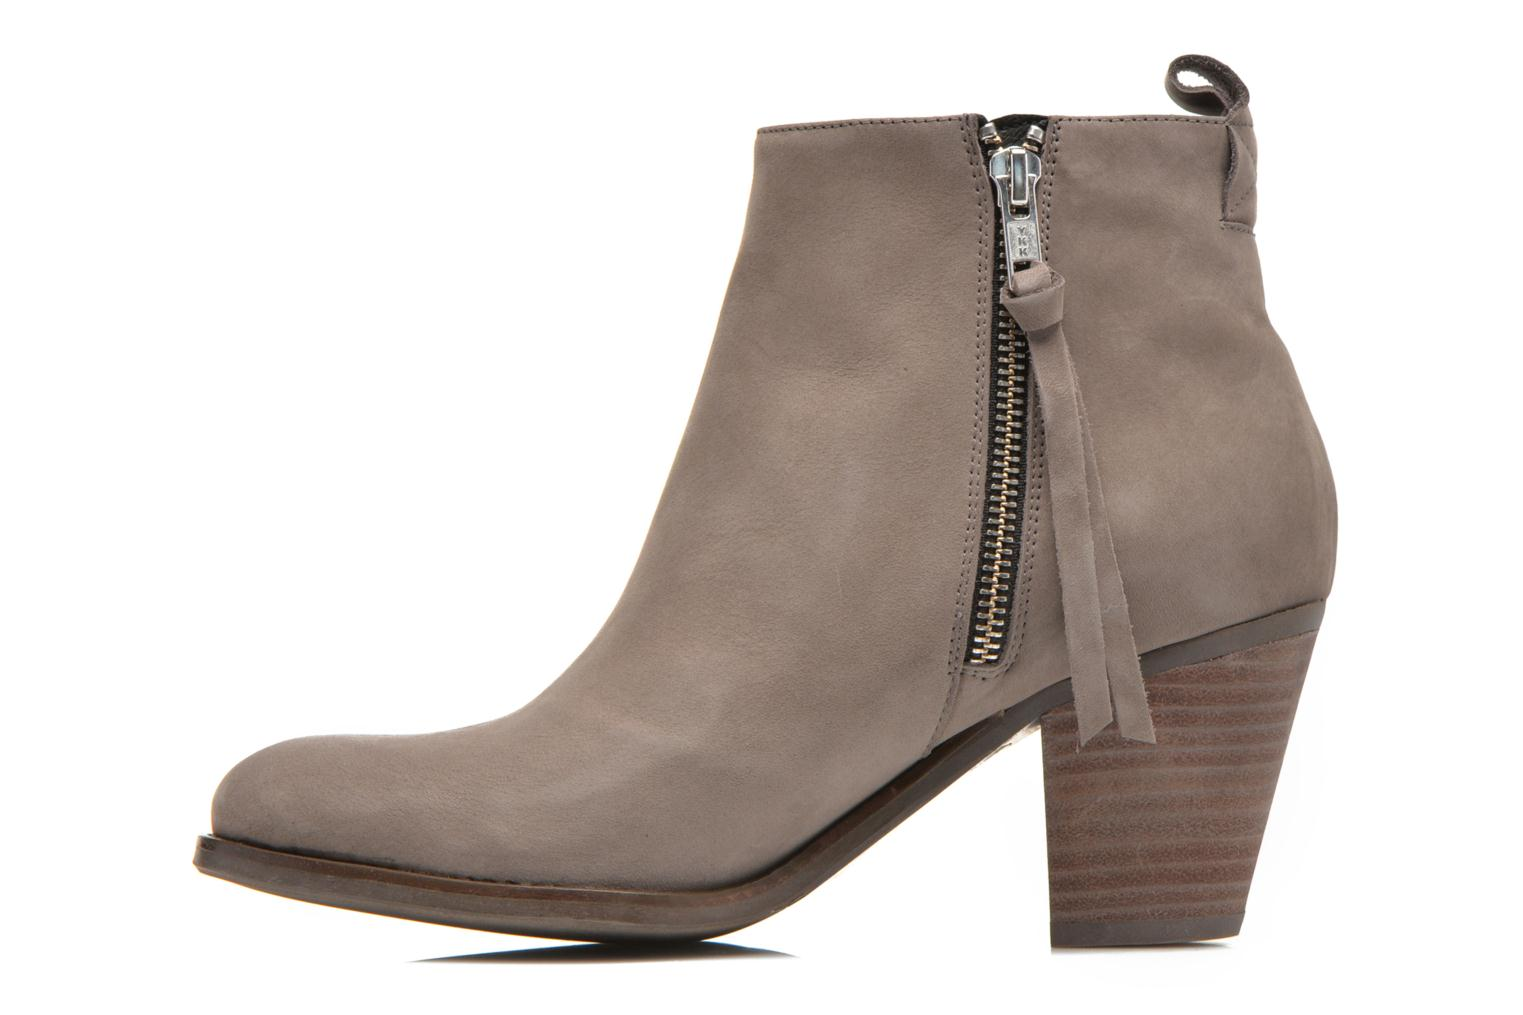 Bottines et boots Billi Bi Iris Beige vue face